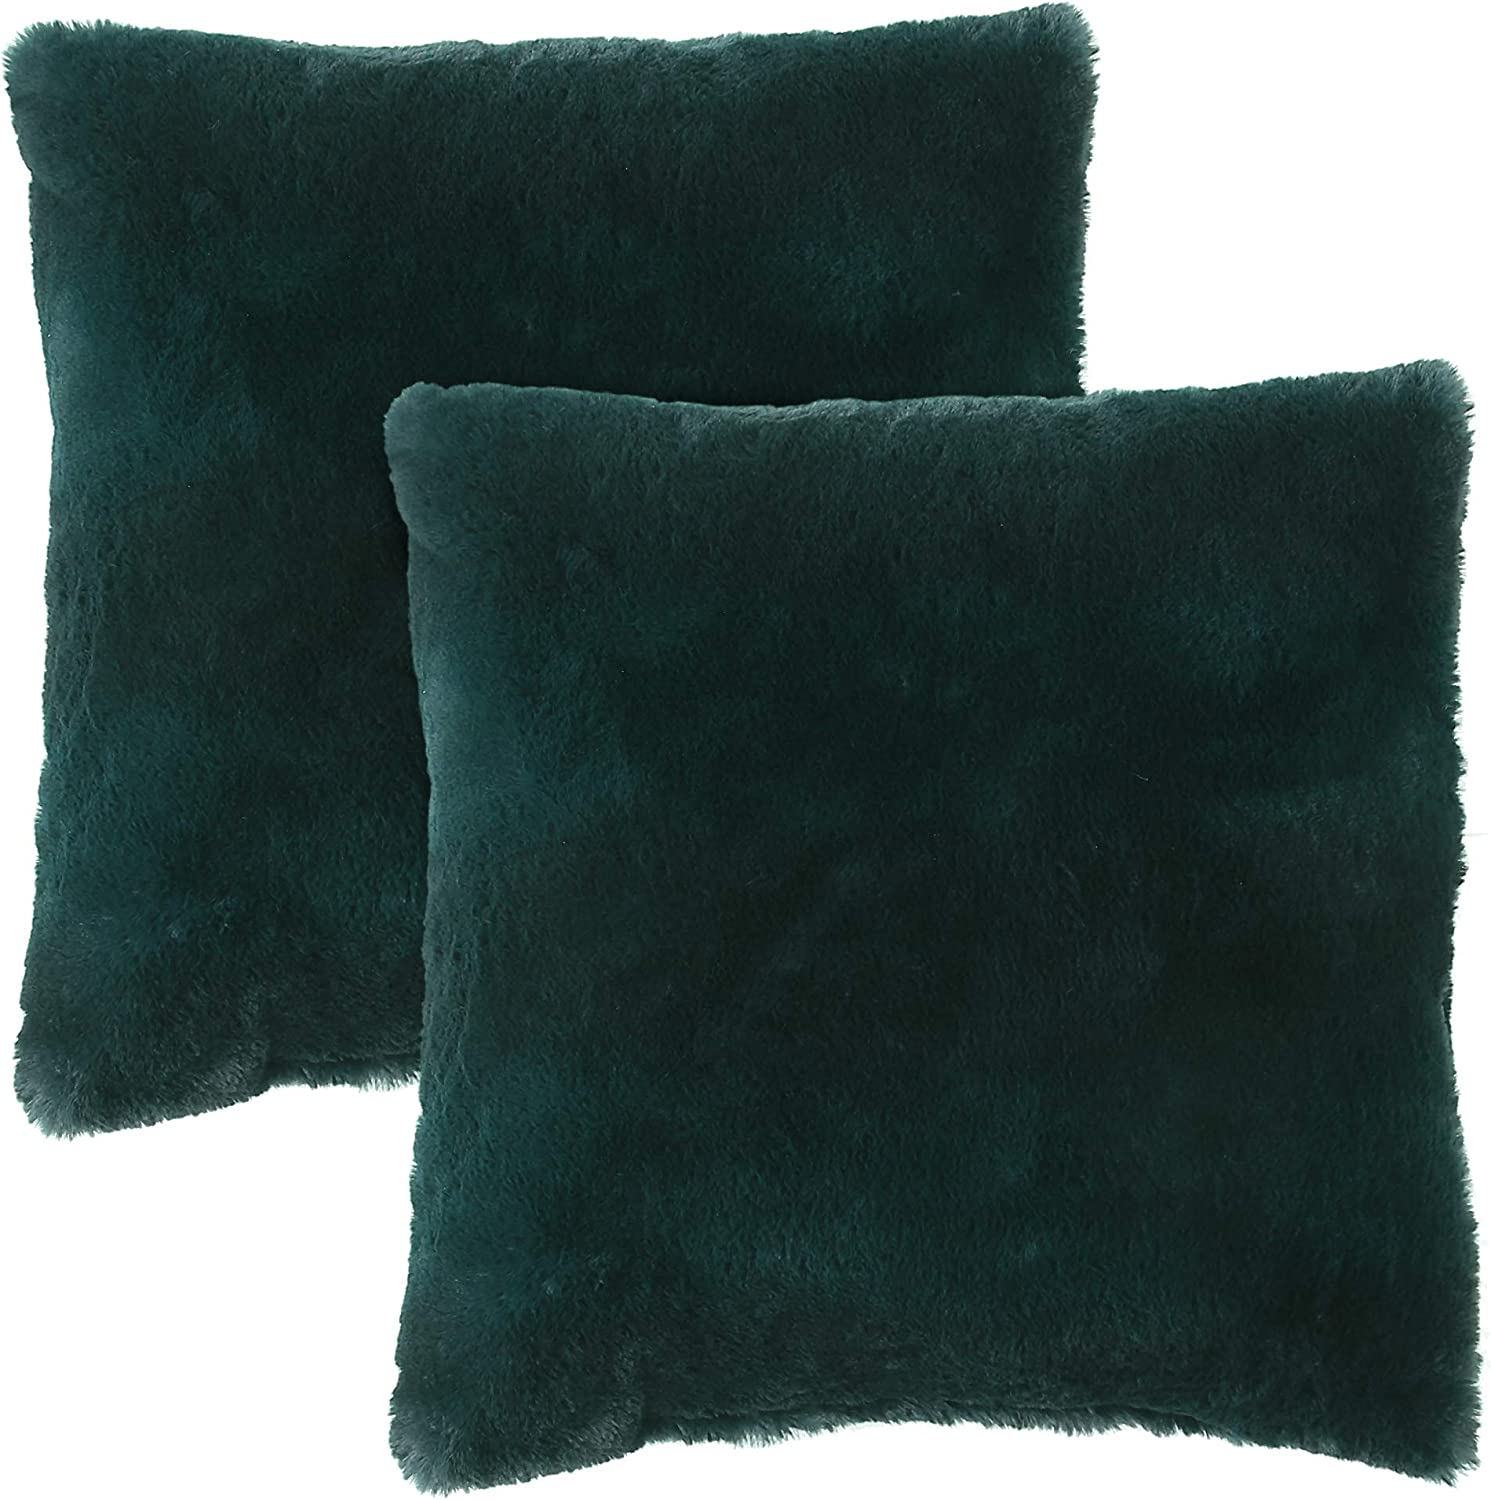 Morgan Home Fashions Decorative Faux Fur Throw Pillow Cushion Covers- 18 x 18 inches, Soft, Cozy and Warm, Home Decor with Multiple Colors Available to Match Most Styles and Blankets (Emerald, 2)